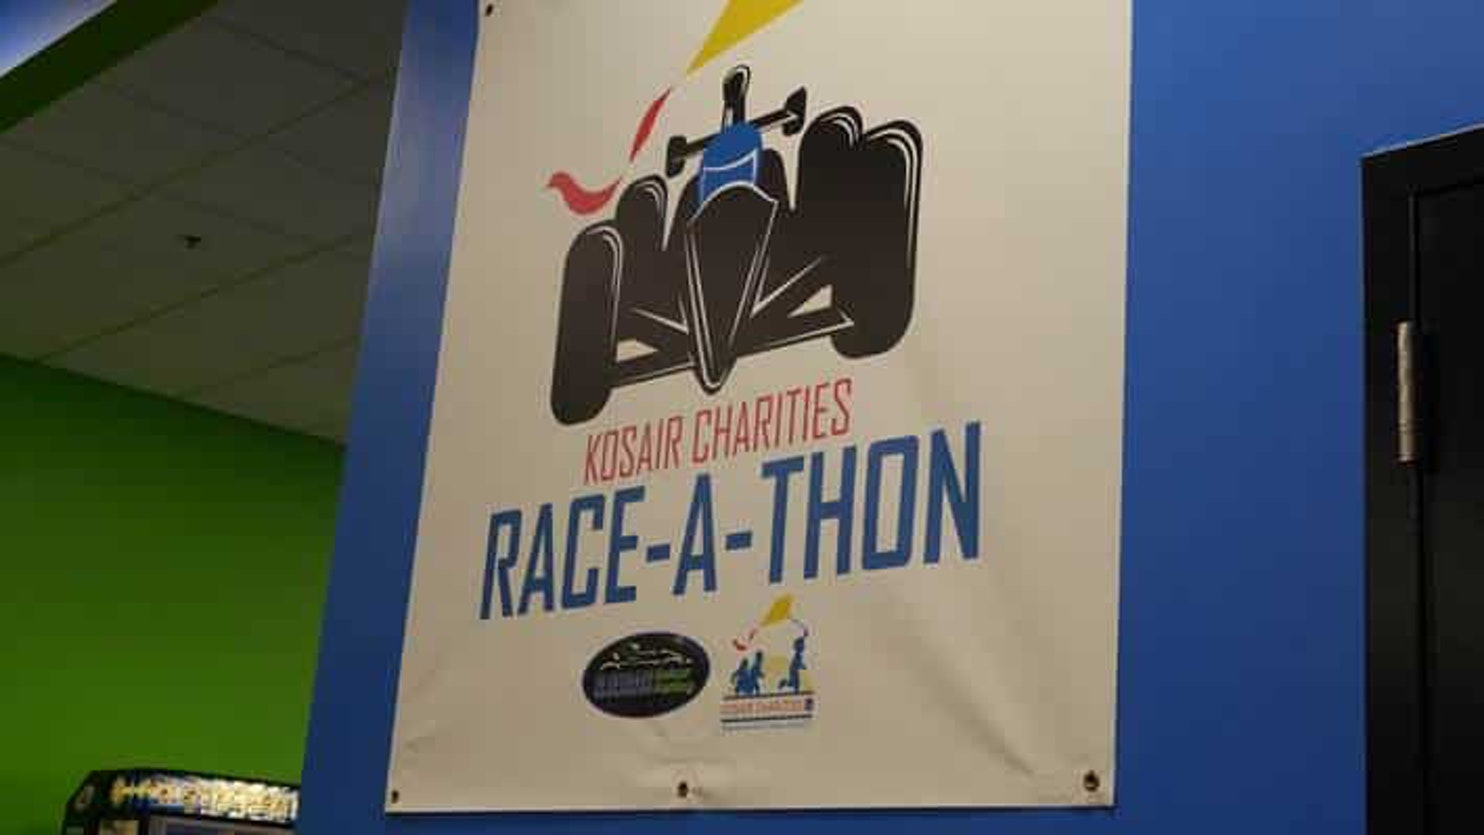 Bluegrass Indoor Karting Kosair Charities Race-a-Thon